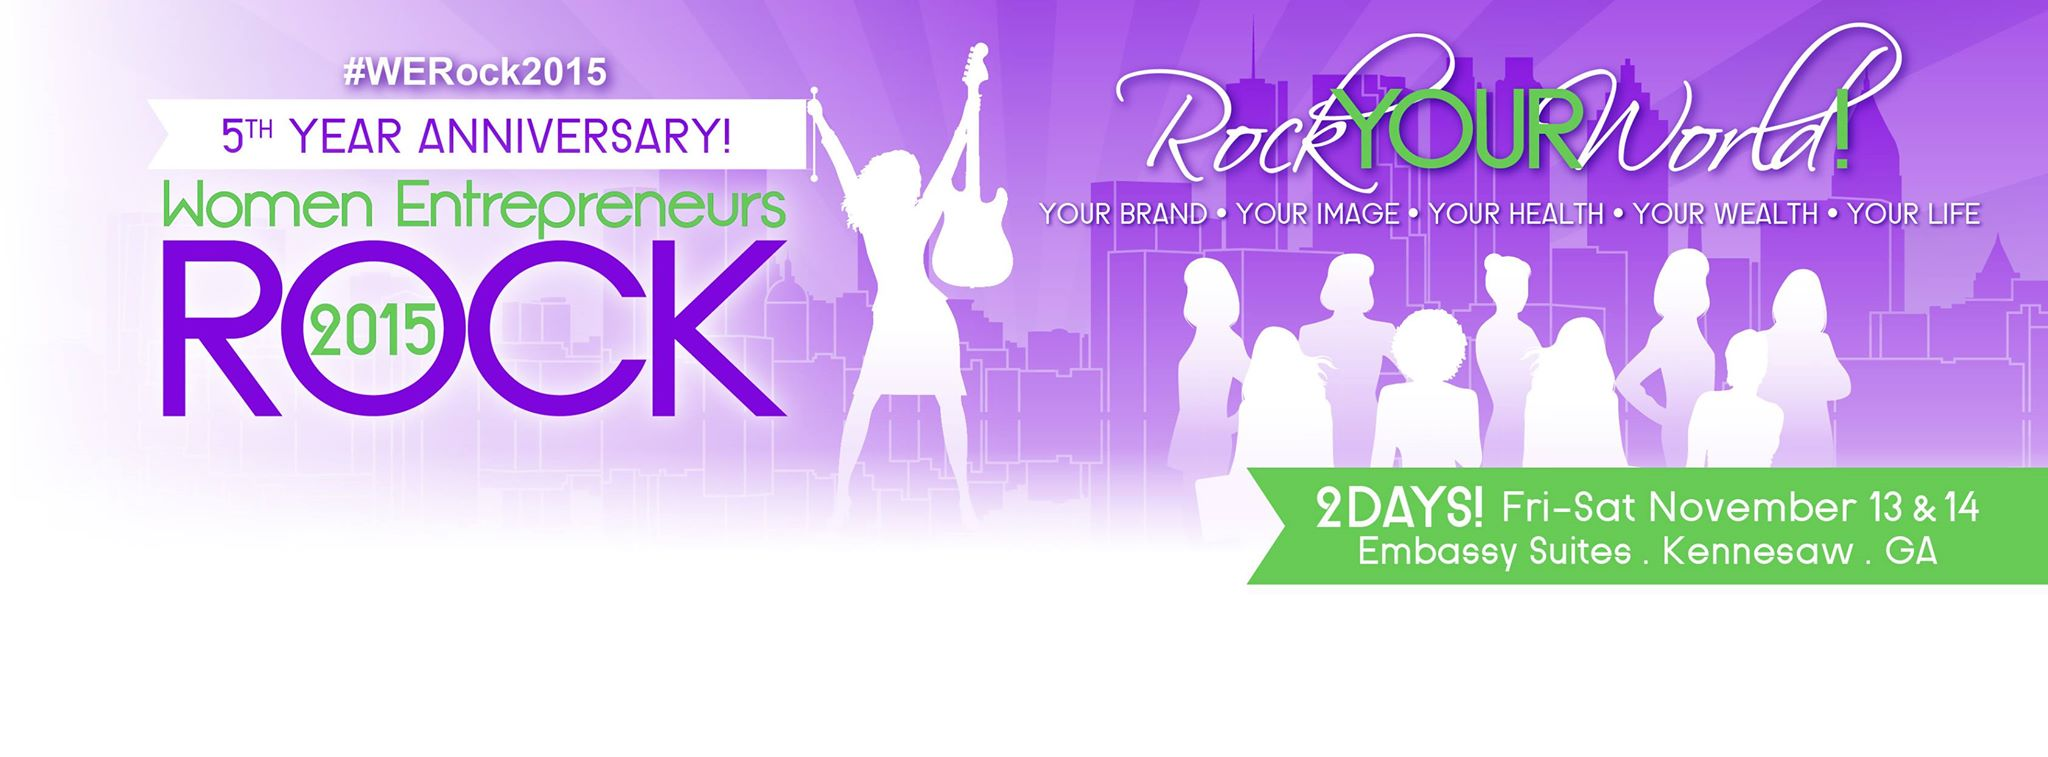 5th annual women entrepreneurs rock conference